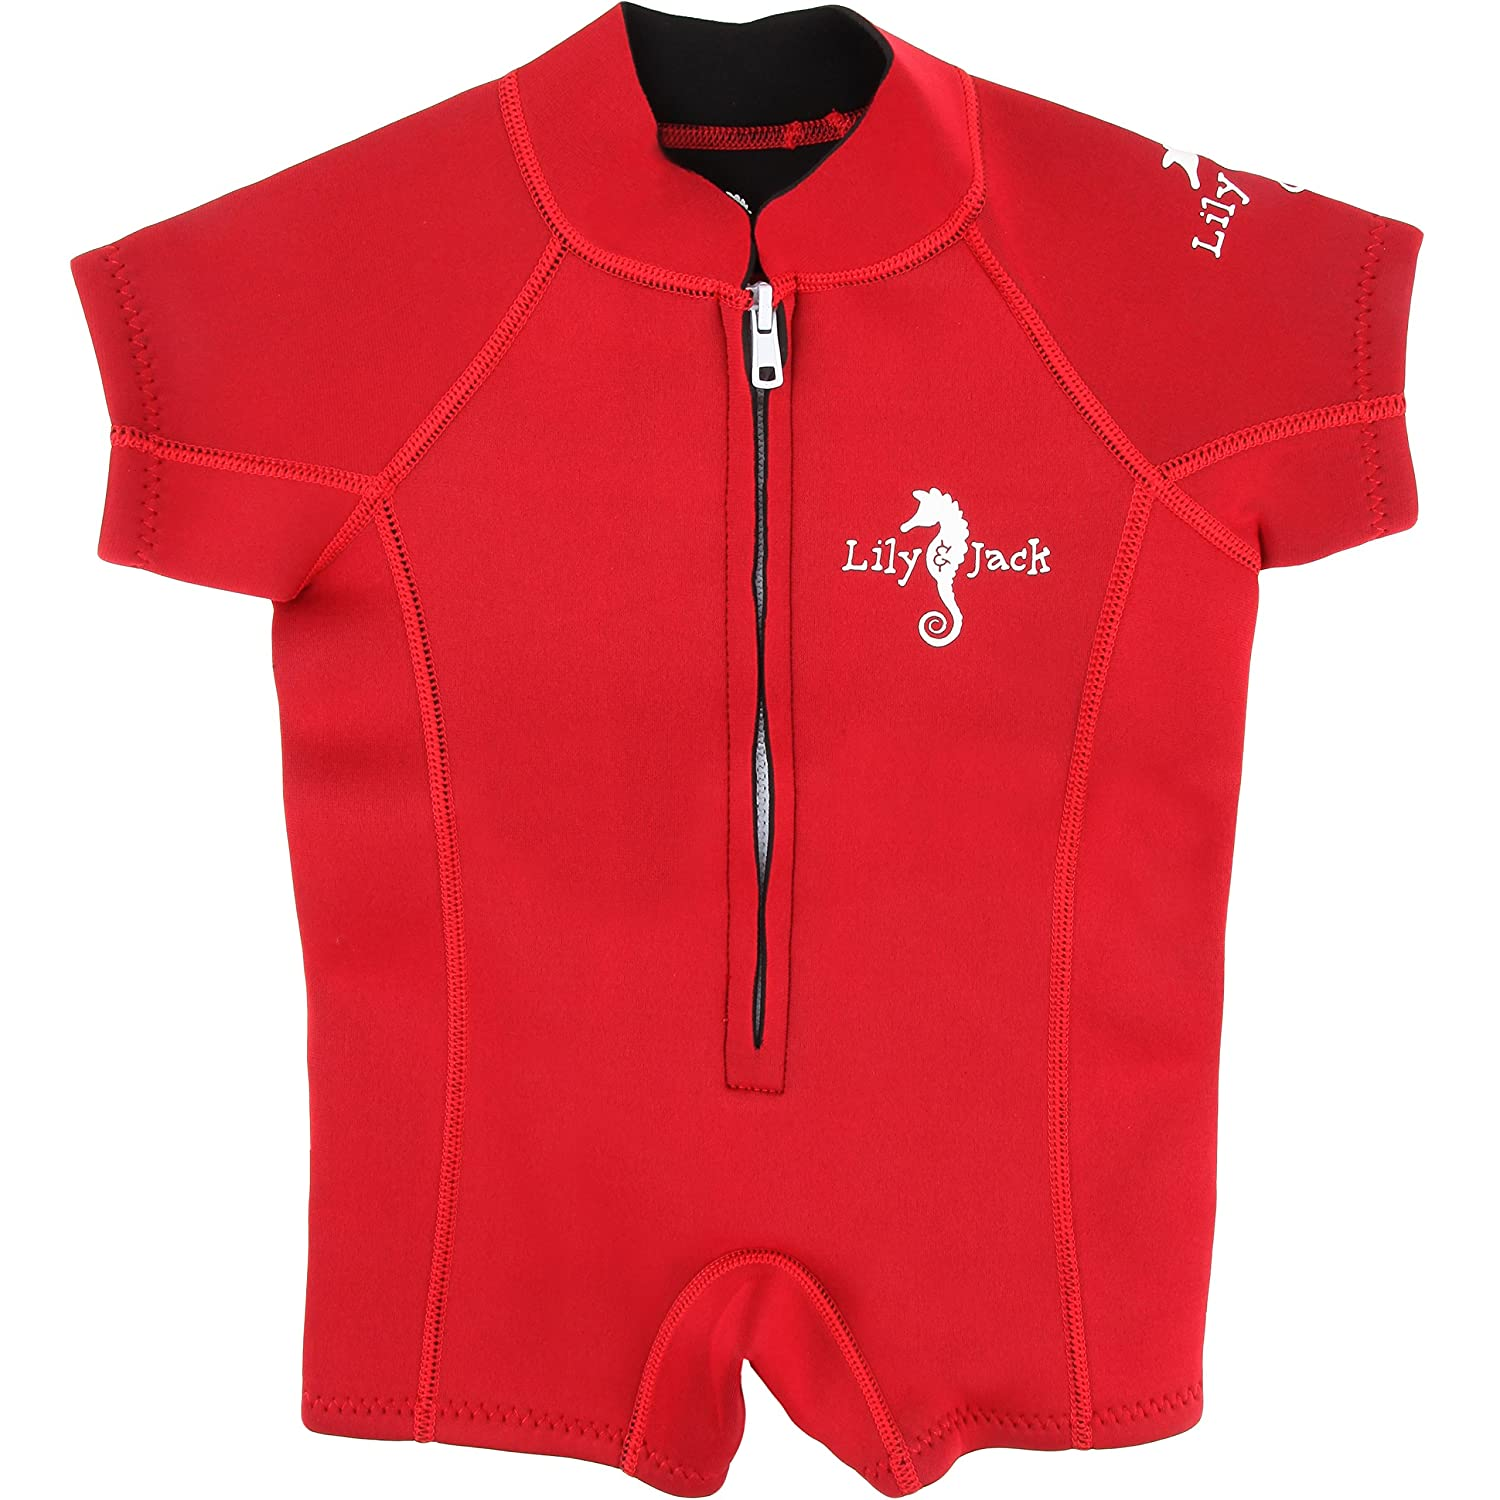 Unisex Baby Neoprene 3mm Wetsuit UV Protected Swimwear for Toddlers (Red)